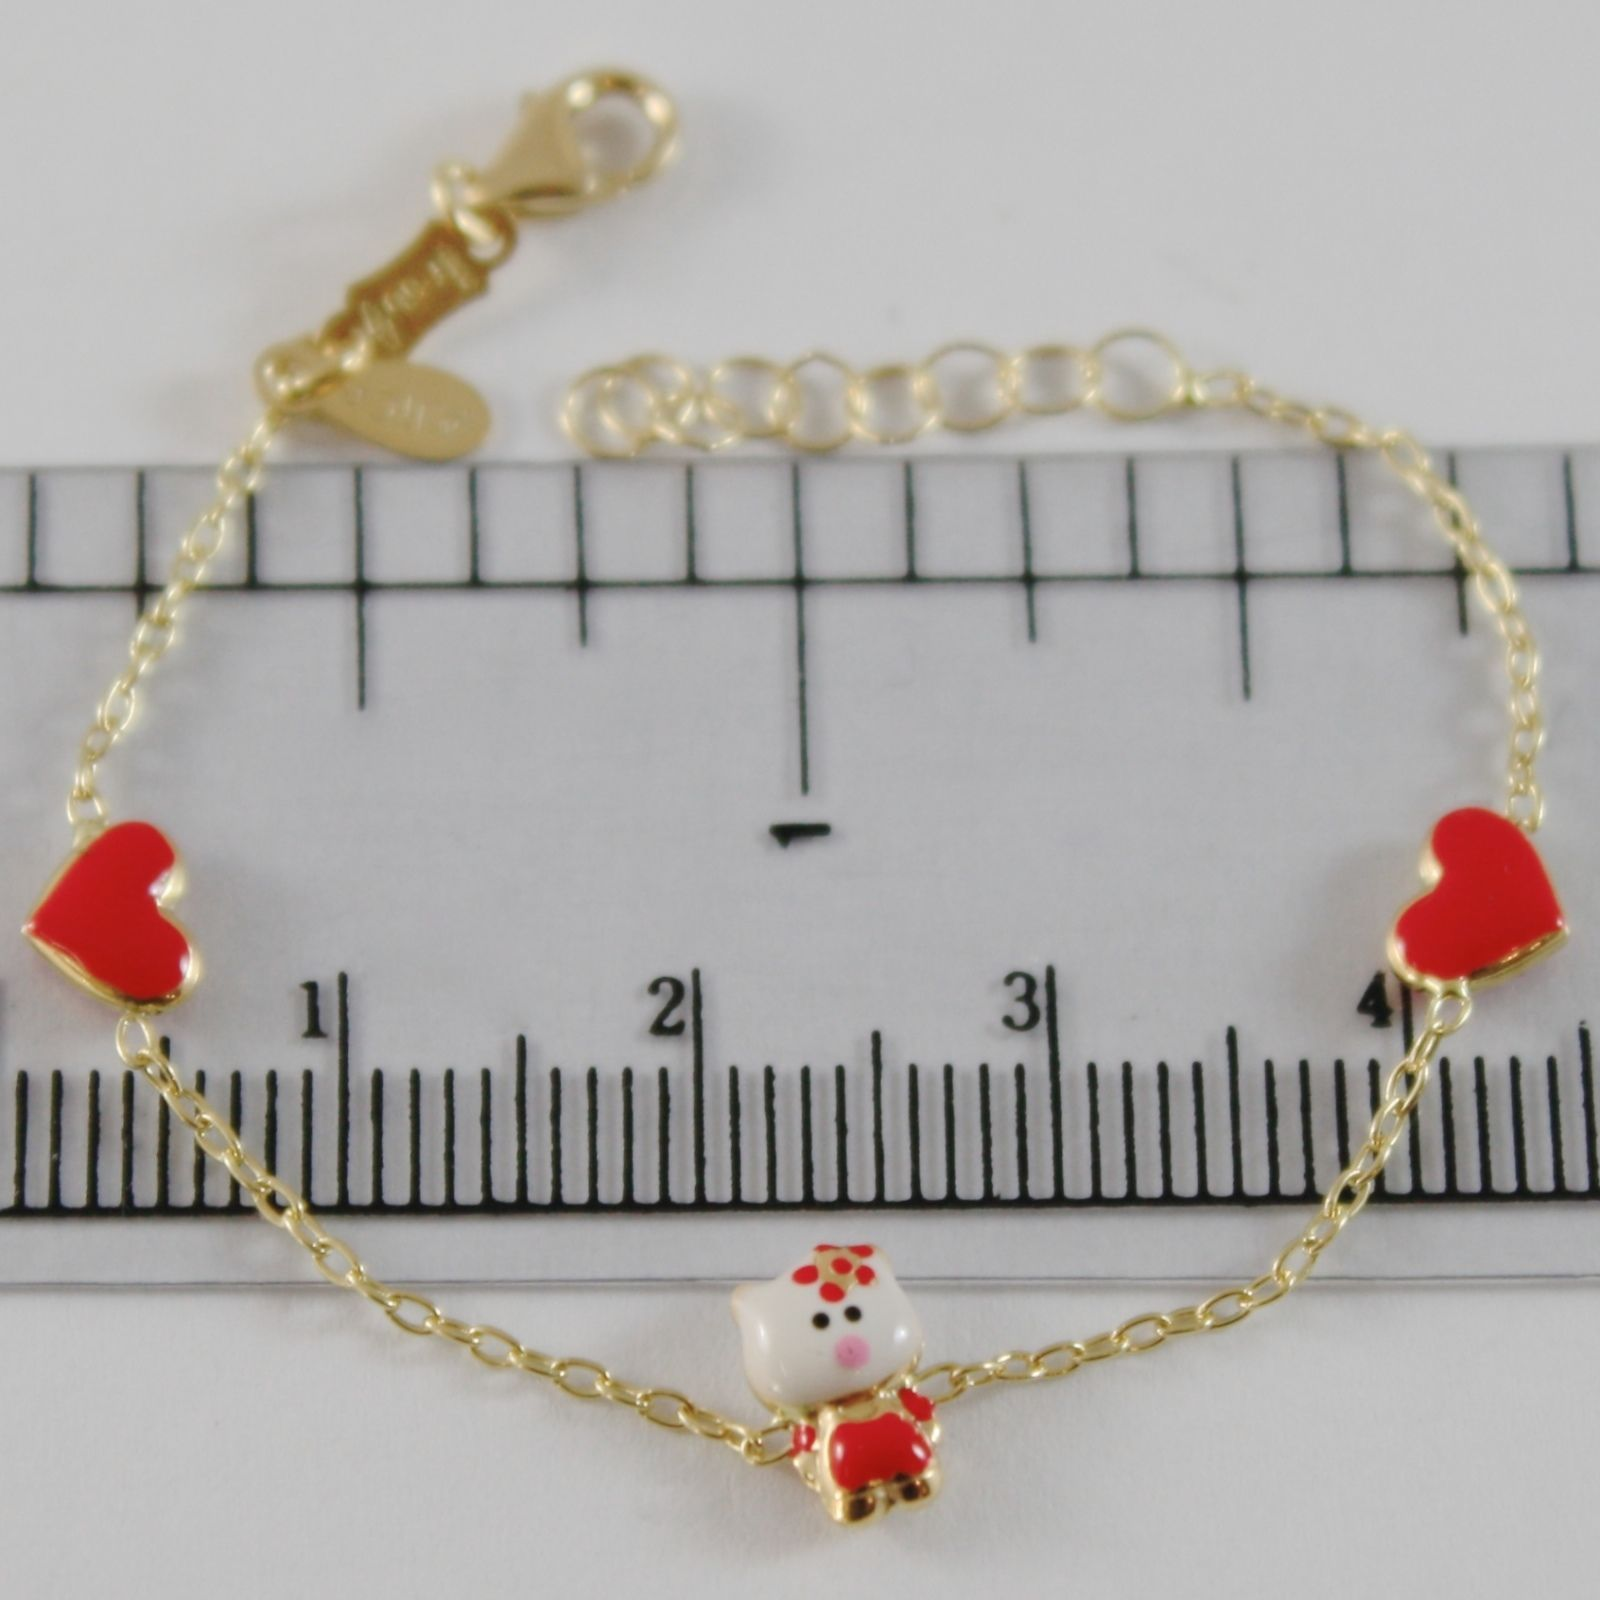 18K YELLOW GOLD GIRL BRACELET 5.50 INCH. GLAZED CAT HEART, ENAMEL, MADE IN ITALY